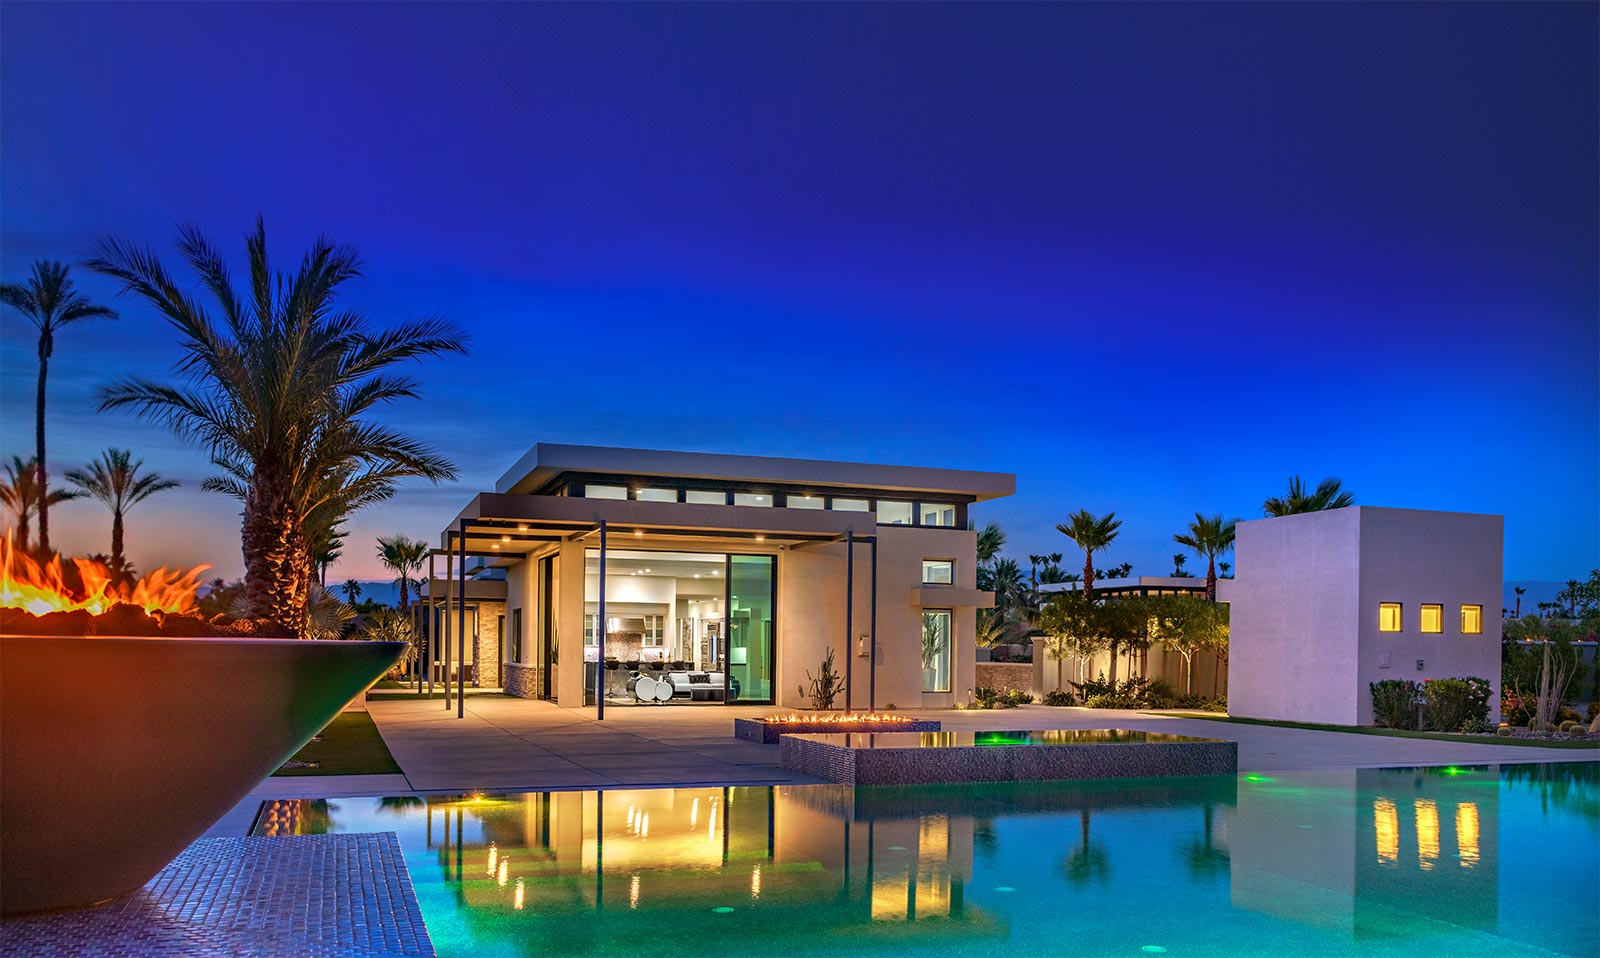 1 St. Petersburg Court in Rancho Mirage